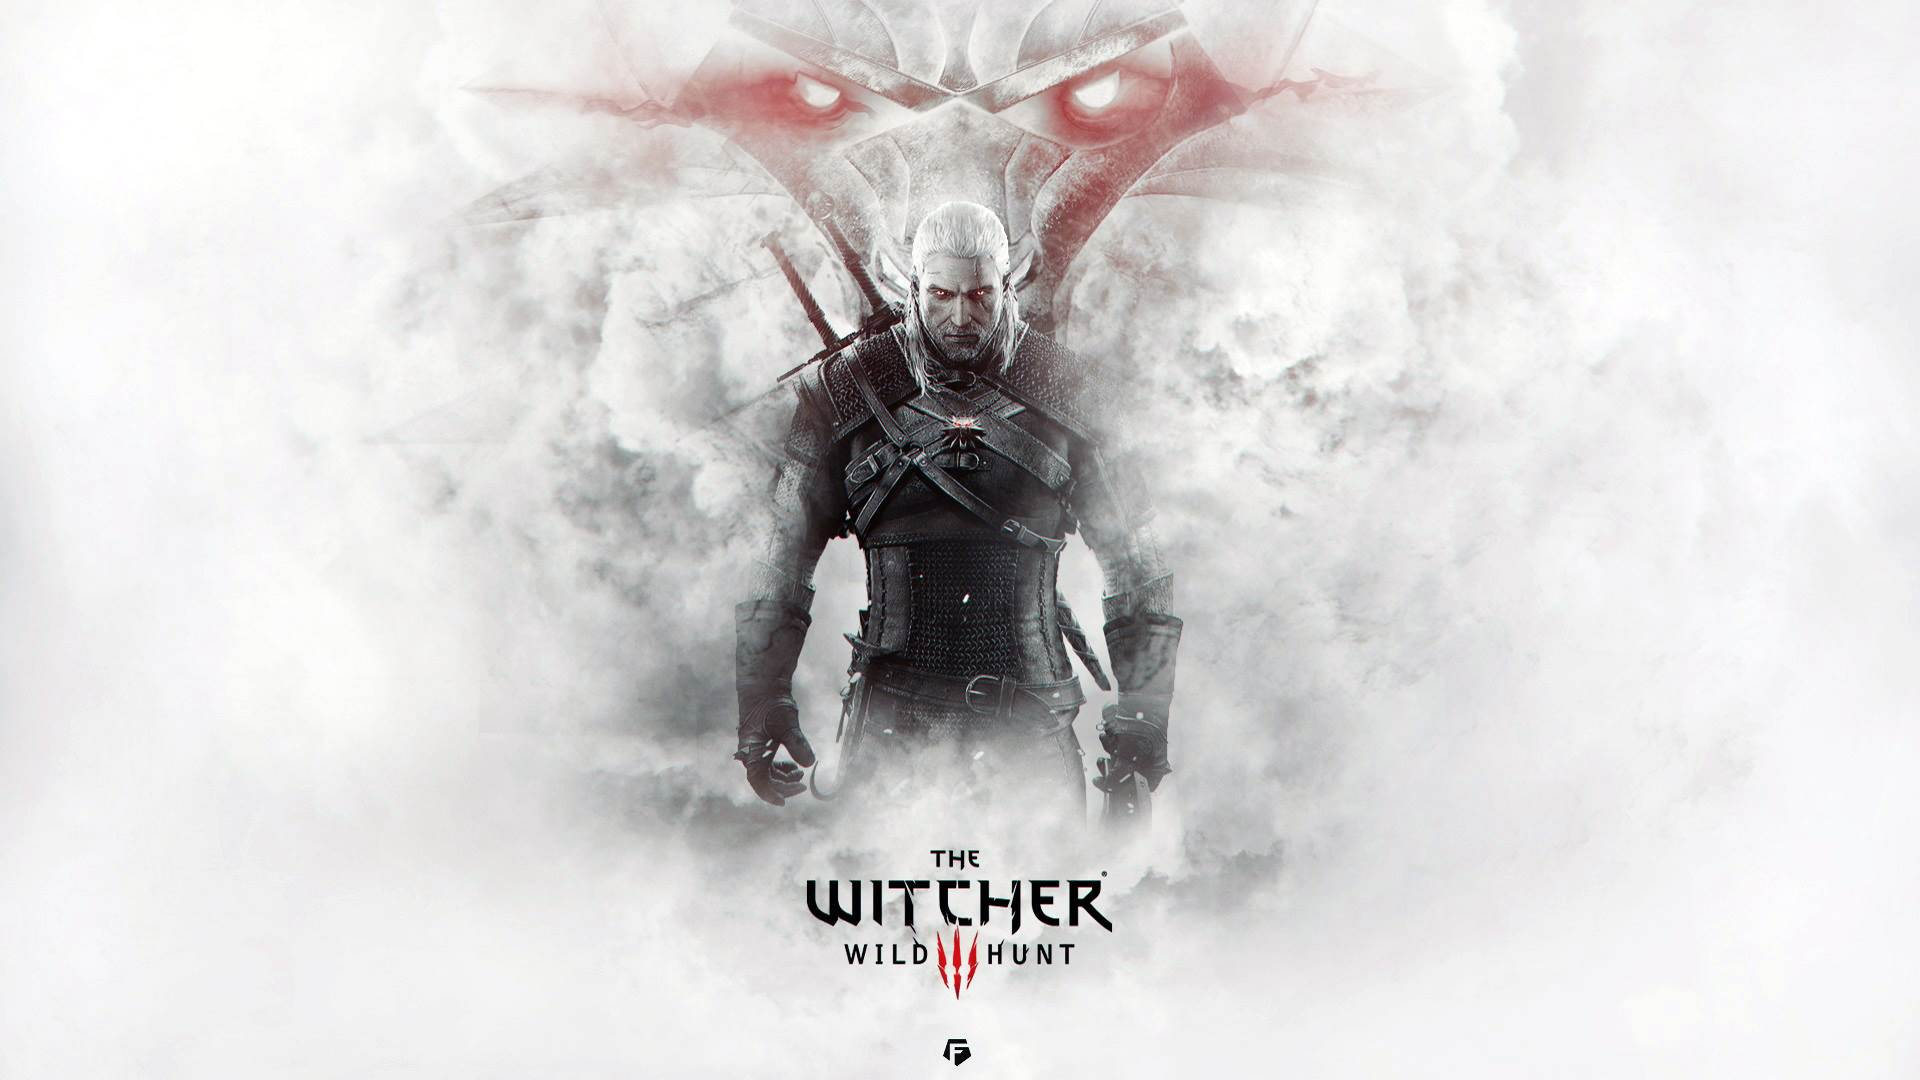 the witcher 3 wild hunt hd wallpaper – adorable wallpapers